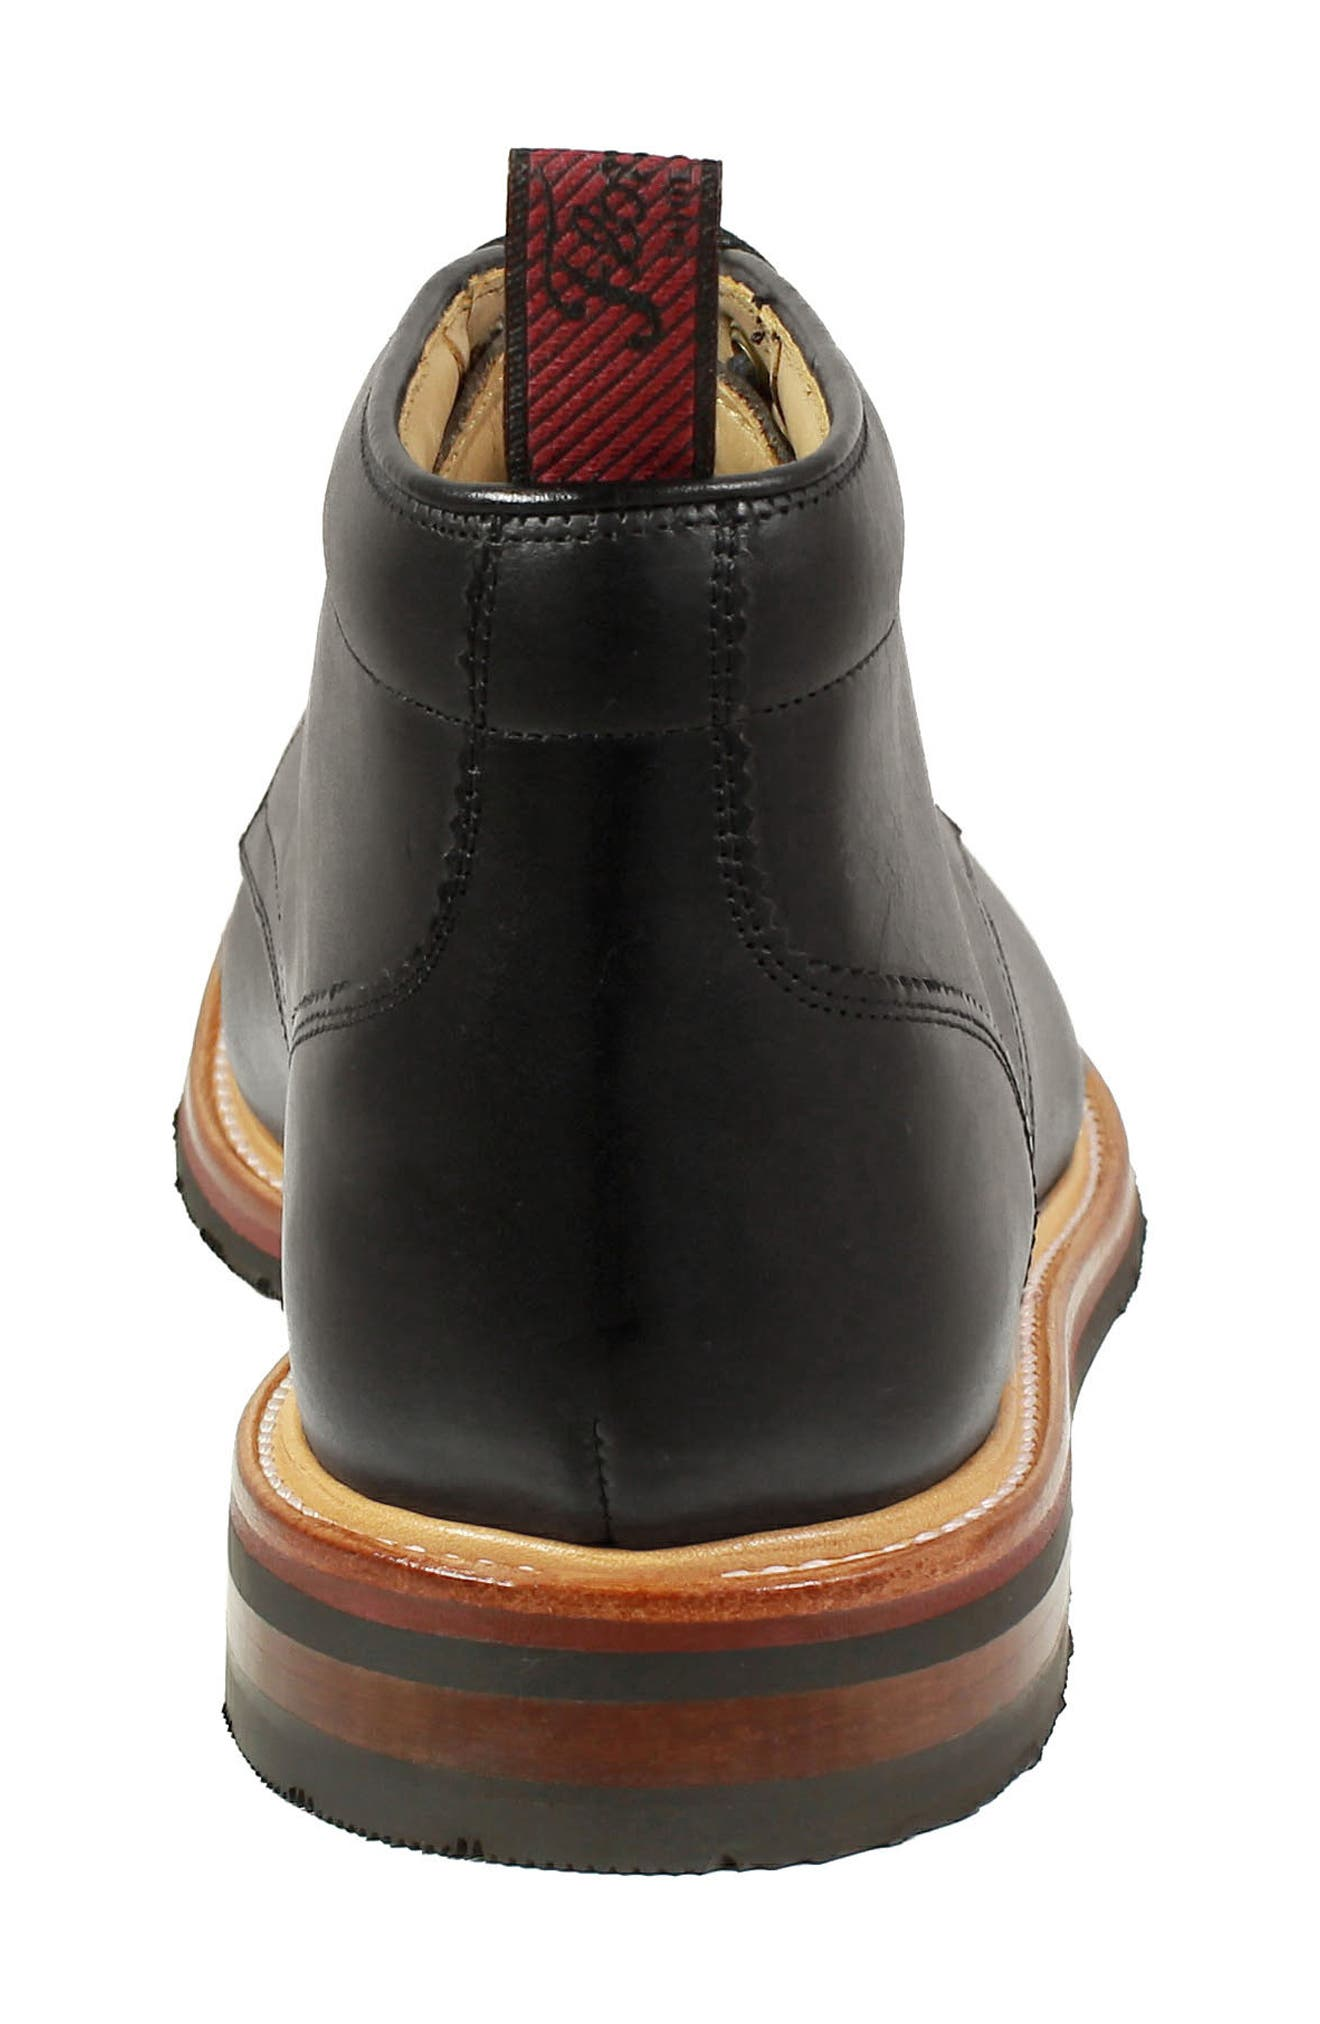 Foundry Leather Boot,                             Alternate thumbnail 6, color,                             BLACK LEATHER